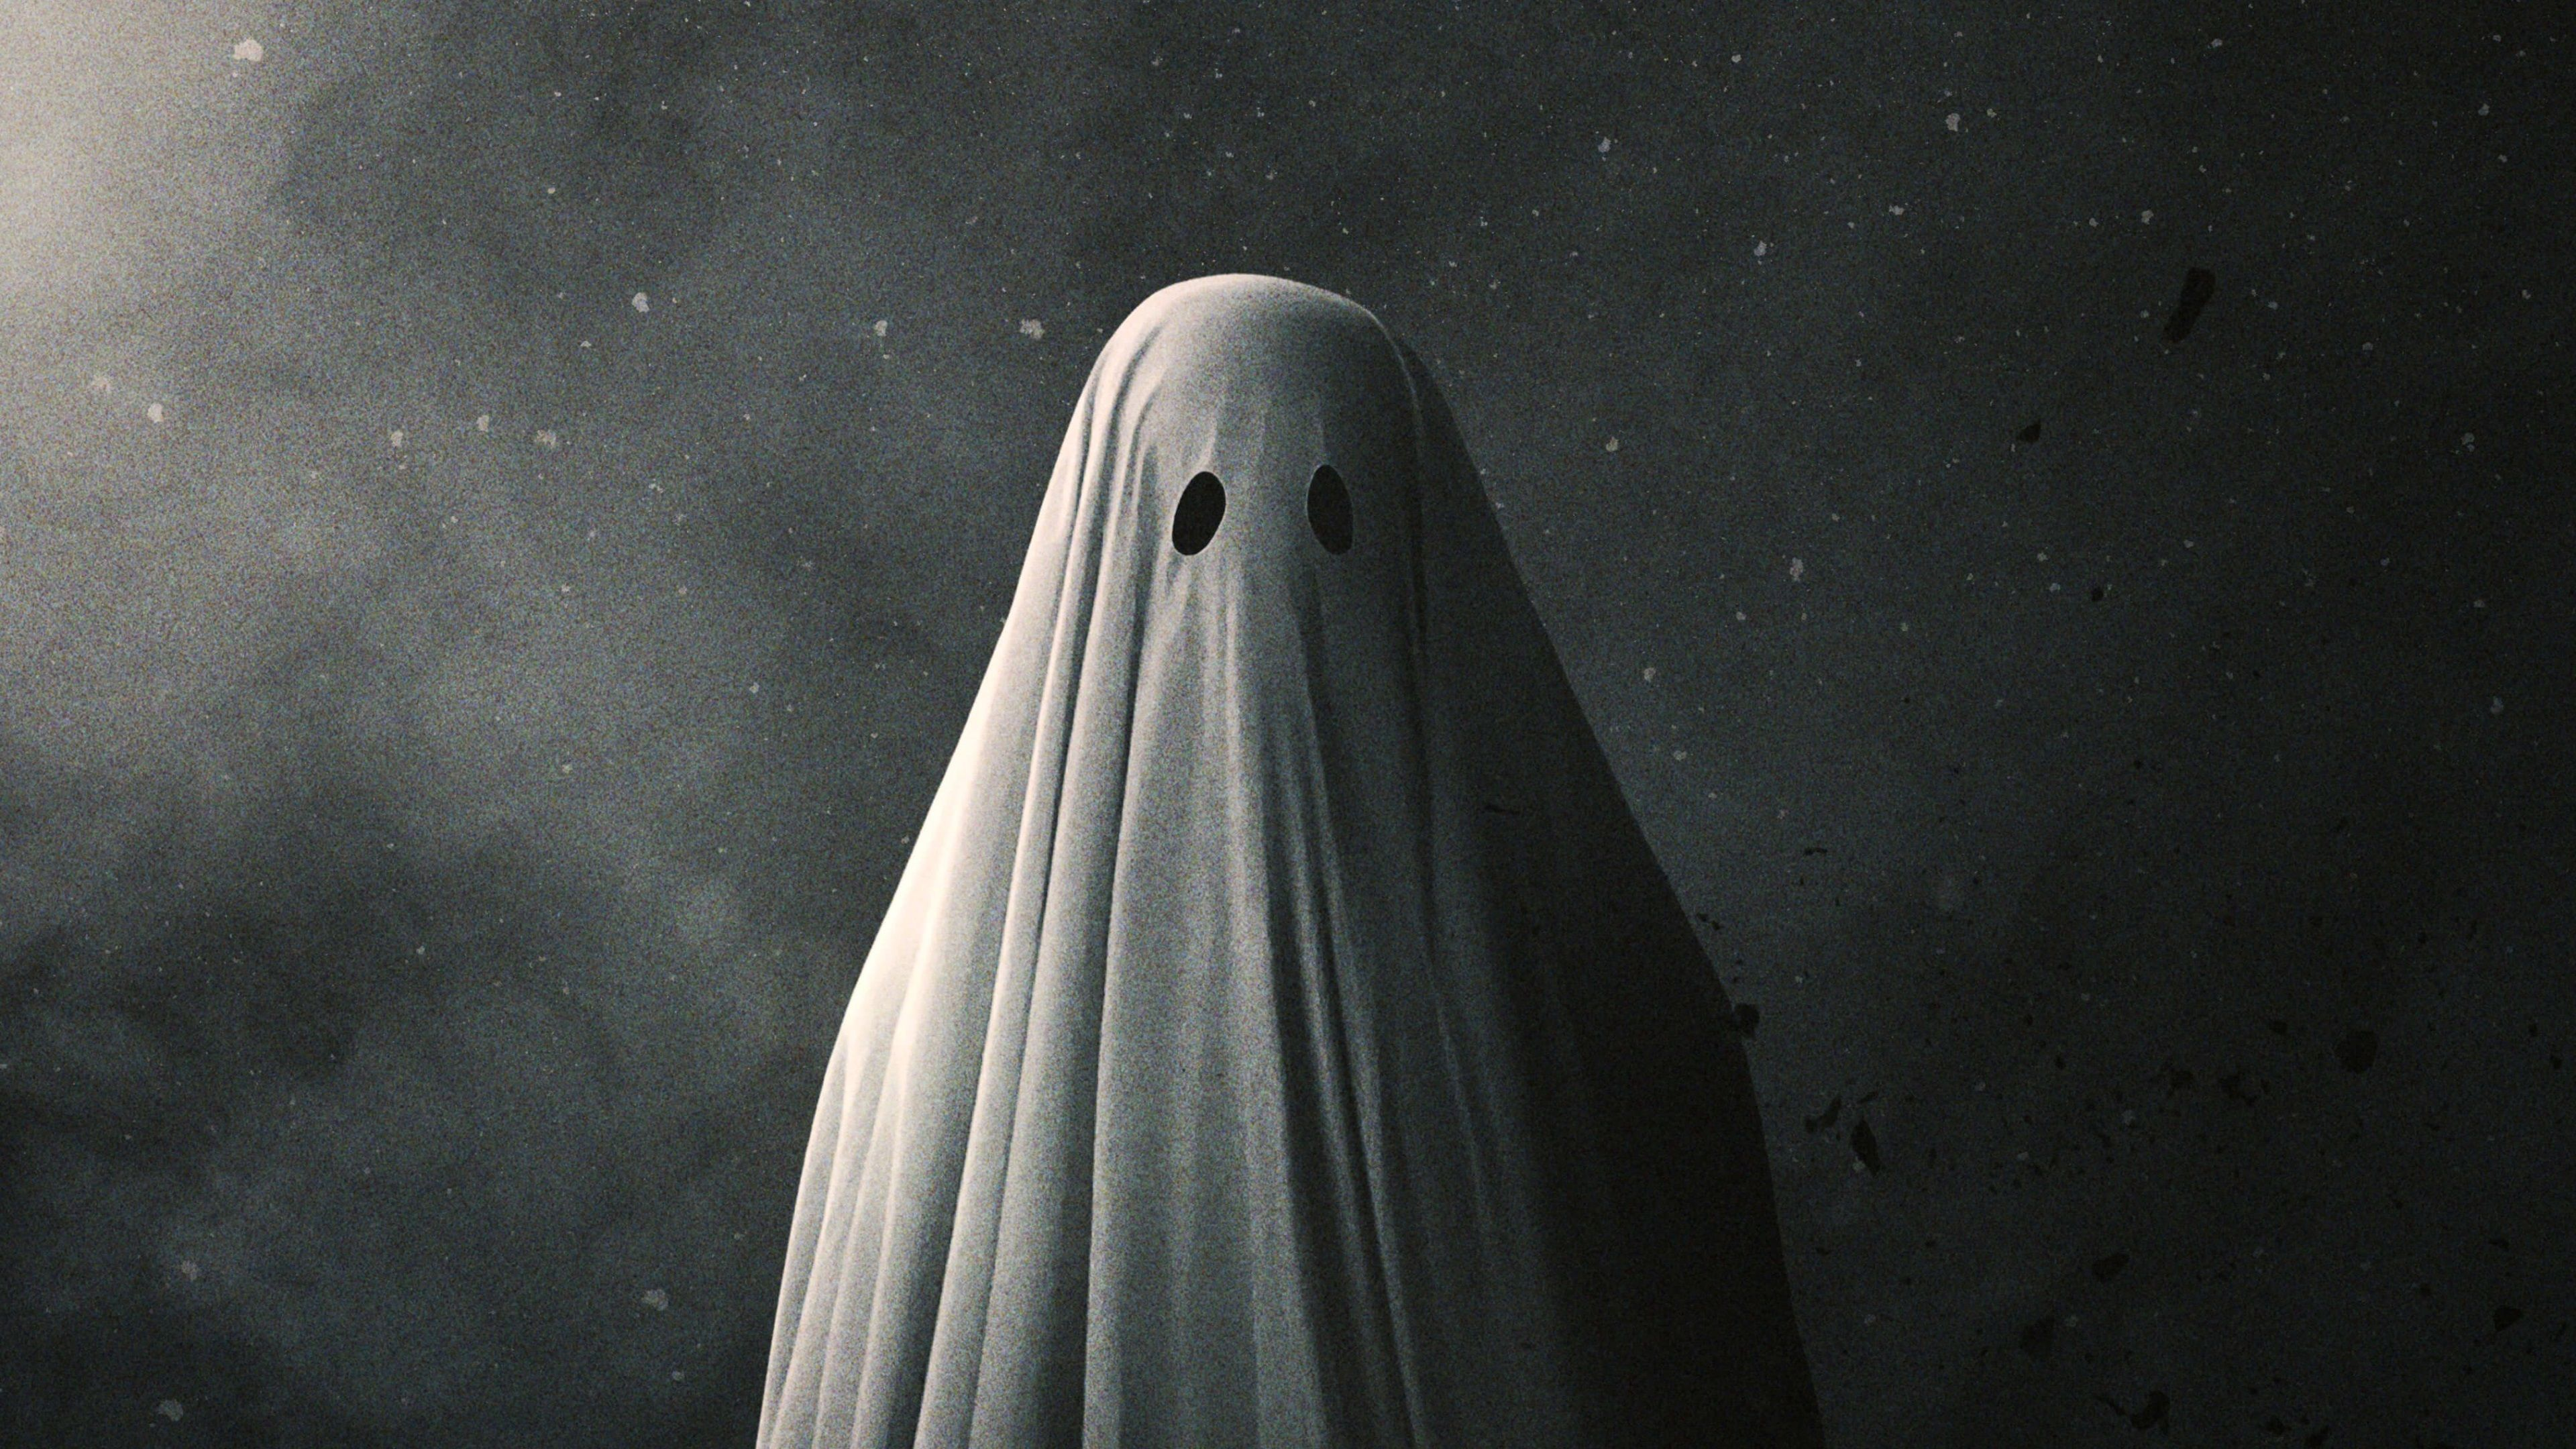 Ghost Hd Wallpapers 1080p Wallpaper Cave